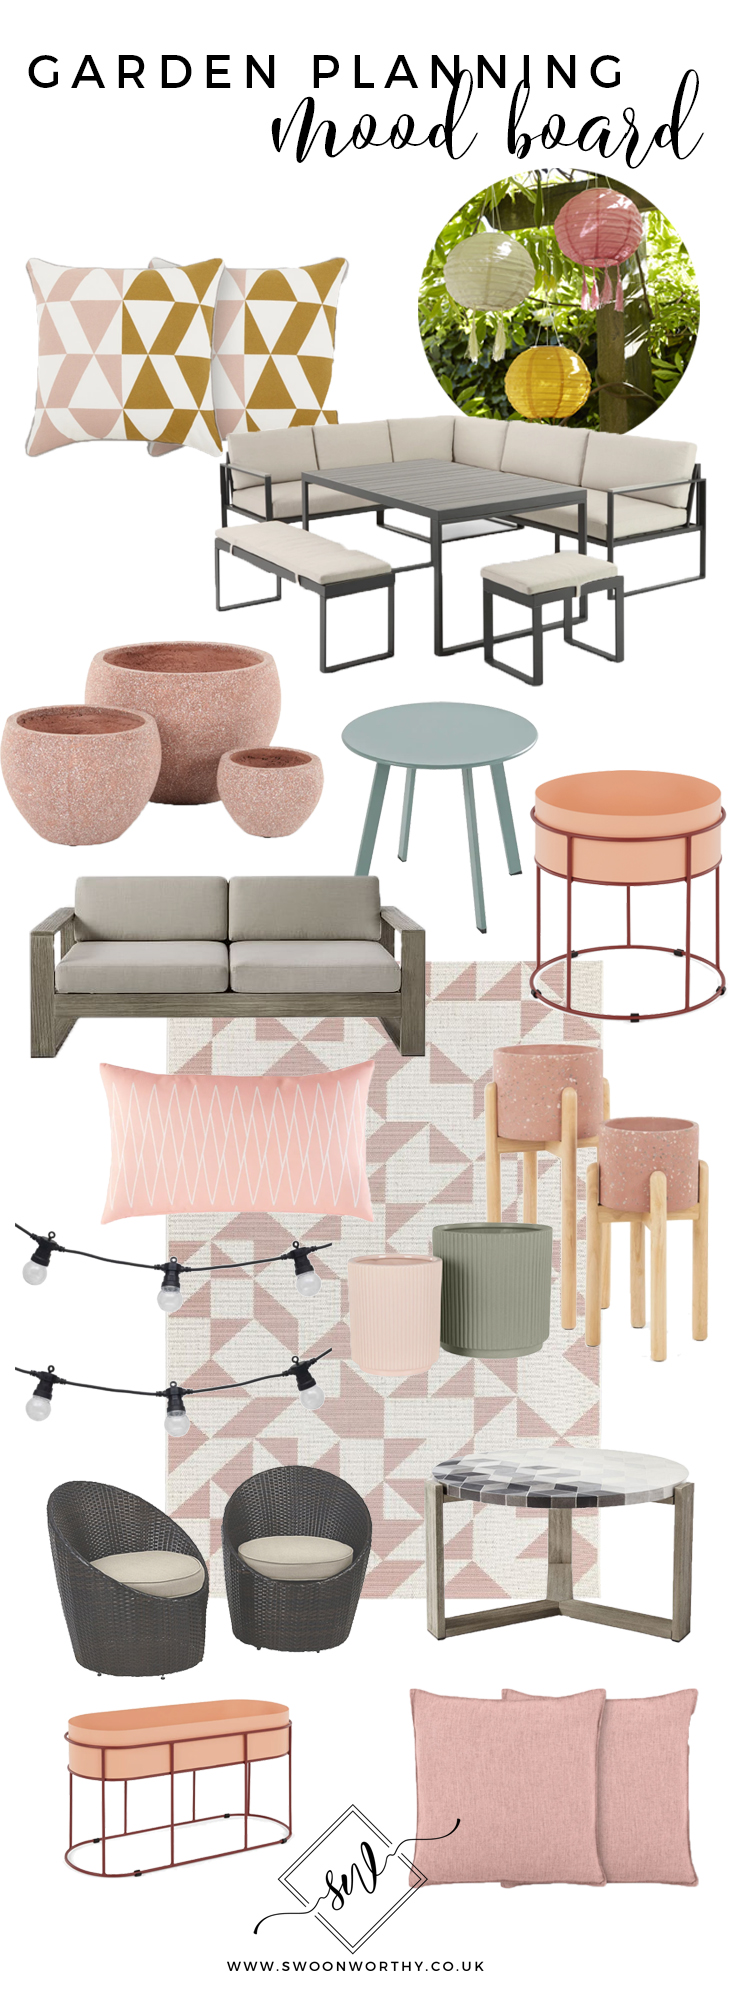 Garden Planning Mood board in peach and pinks